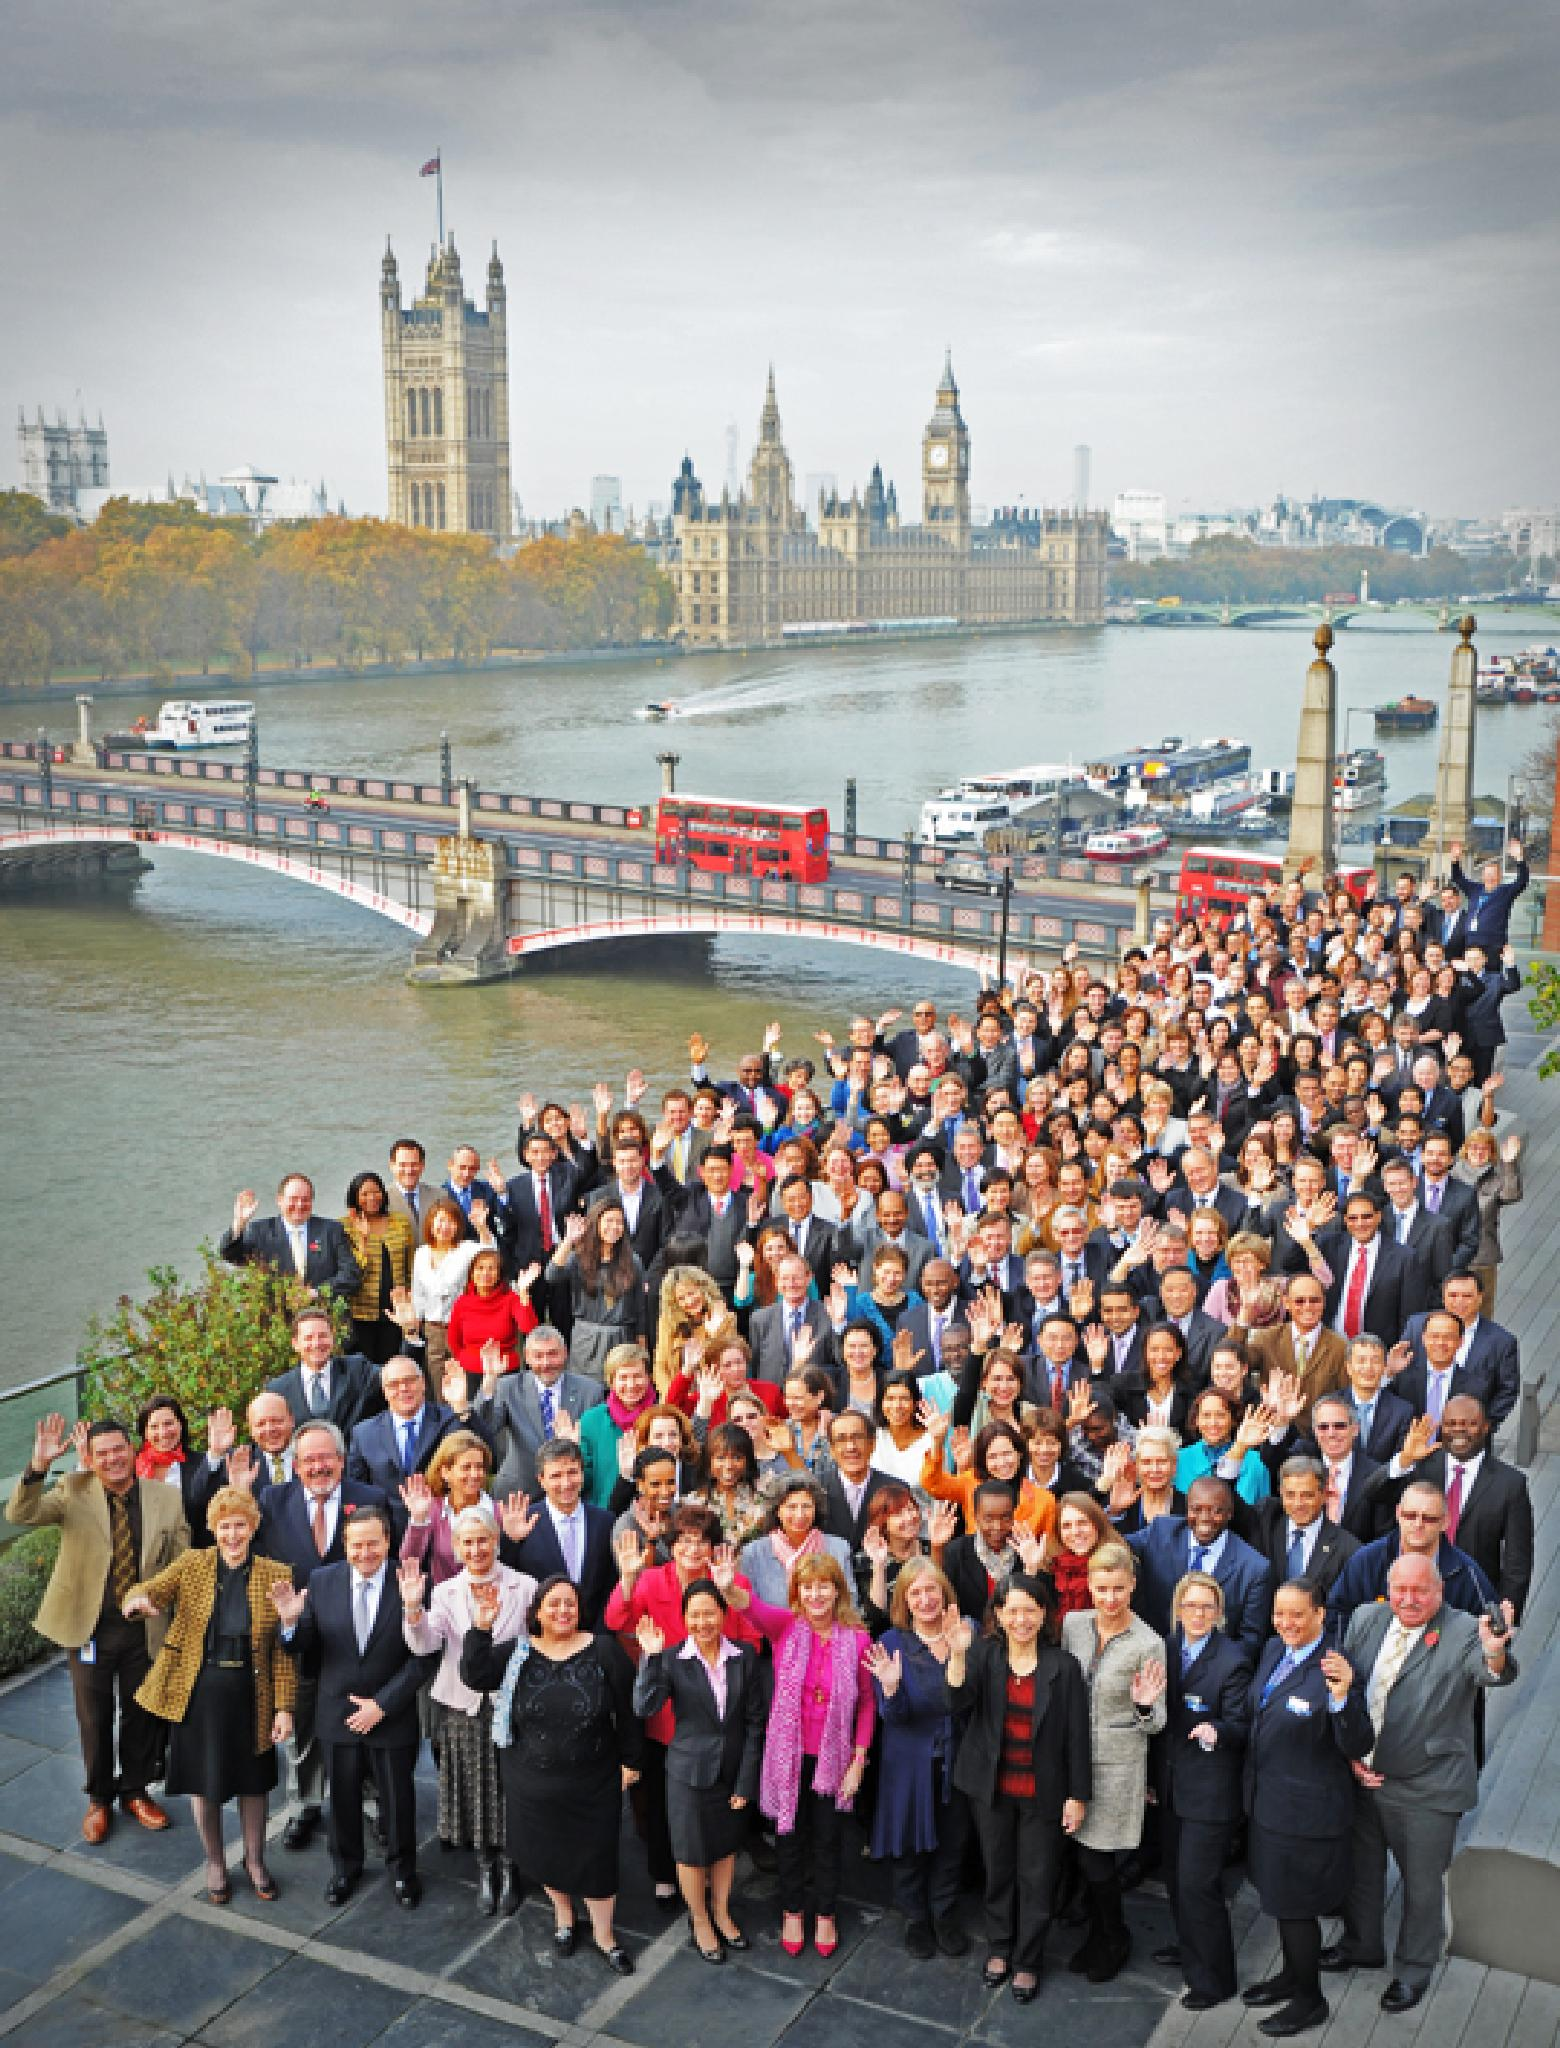 Group photography in London by grantlylynch73